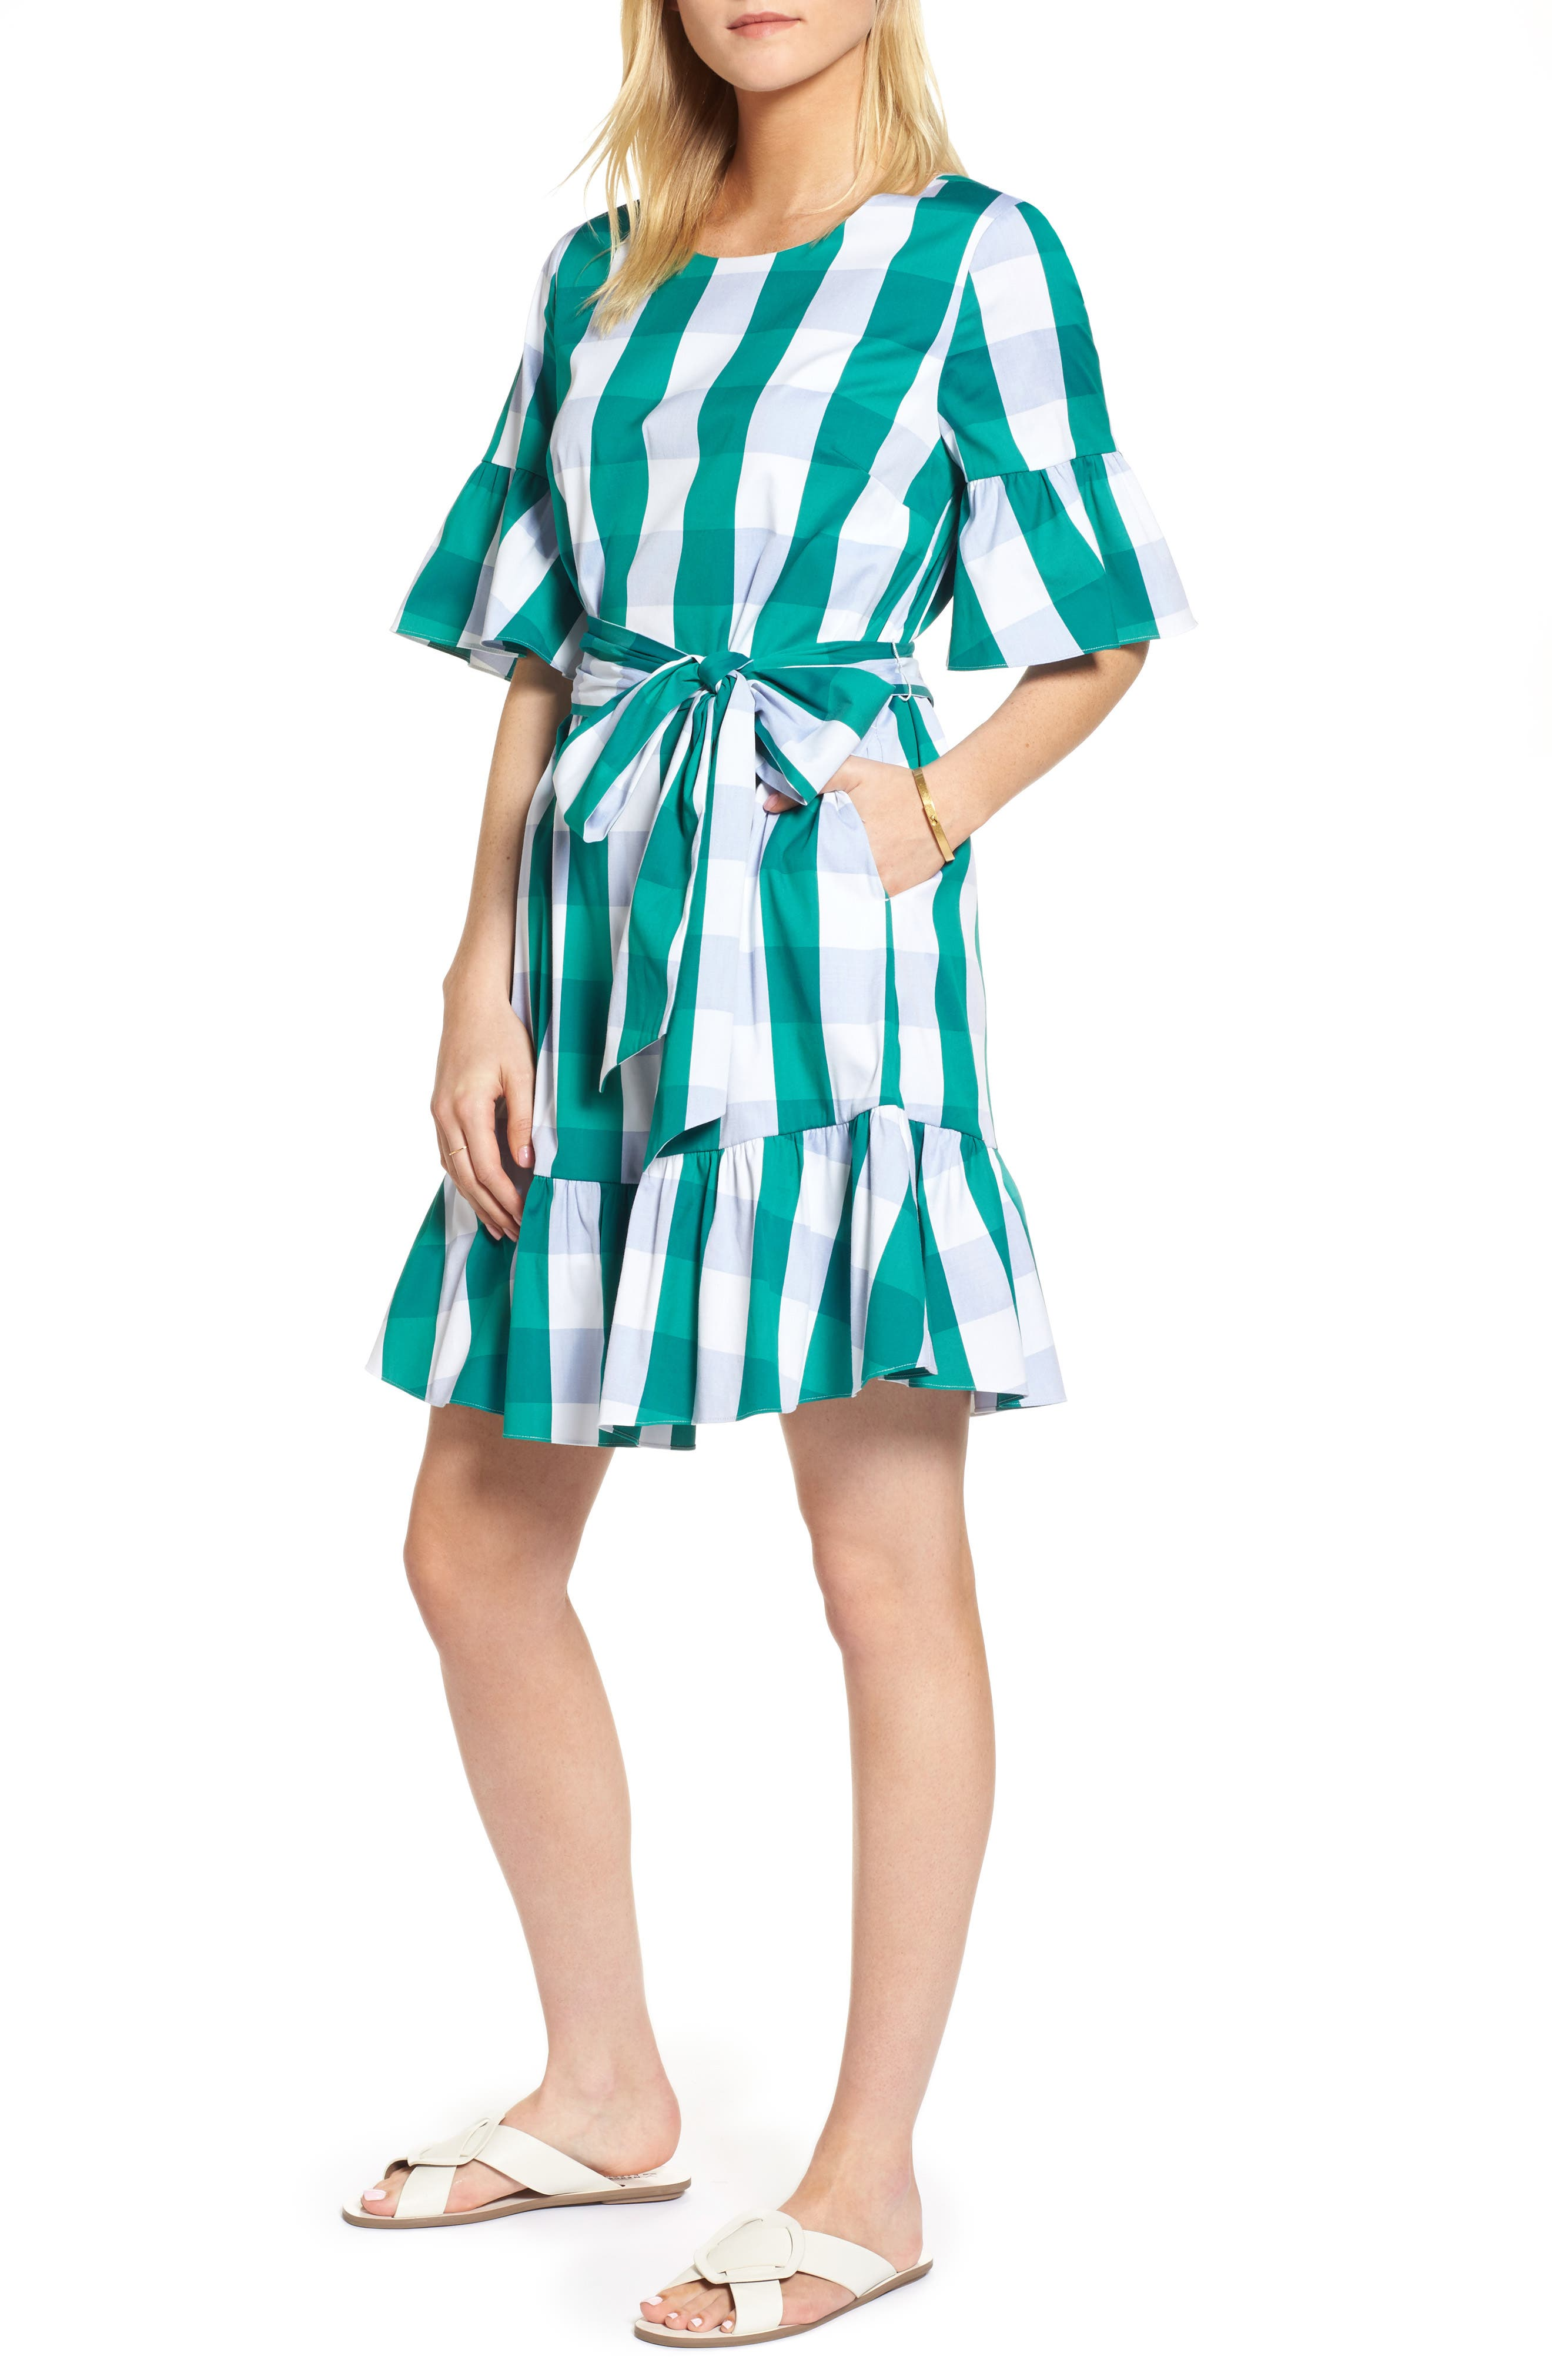 Ruffle & Bow Dress,                         Main,                         color, Green- Blue Gingham